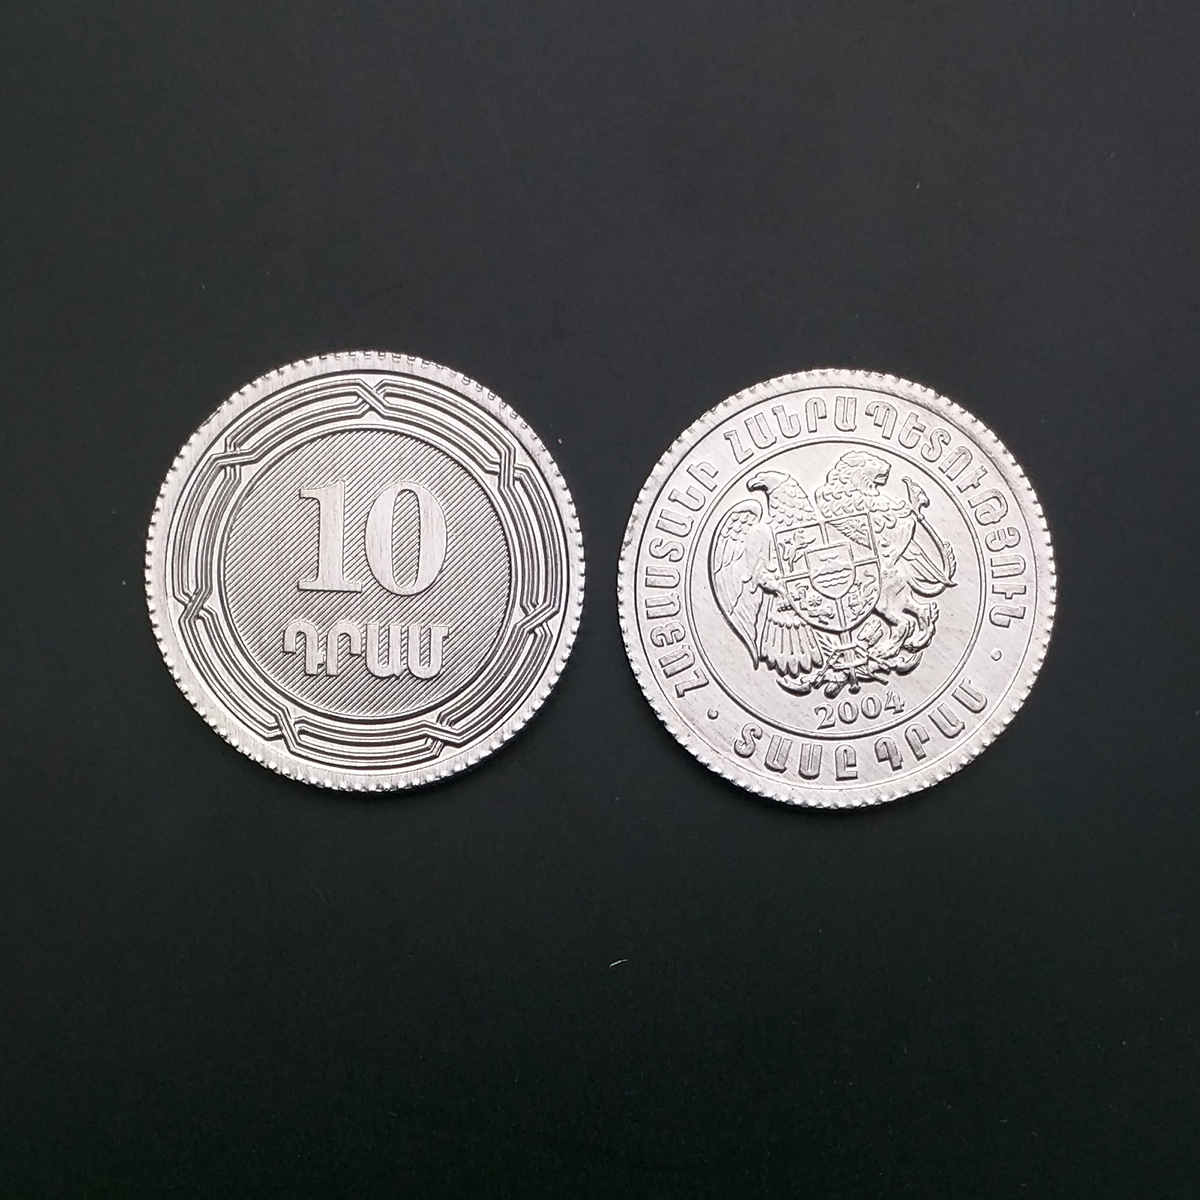 Armenian 10 Dram Aluminum Coin 2004 New Genuine Original Coins 100% Real Issuing Coins Unc